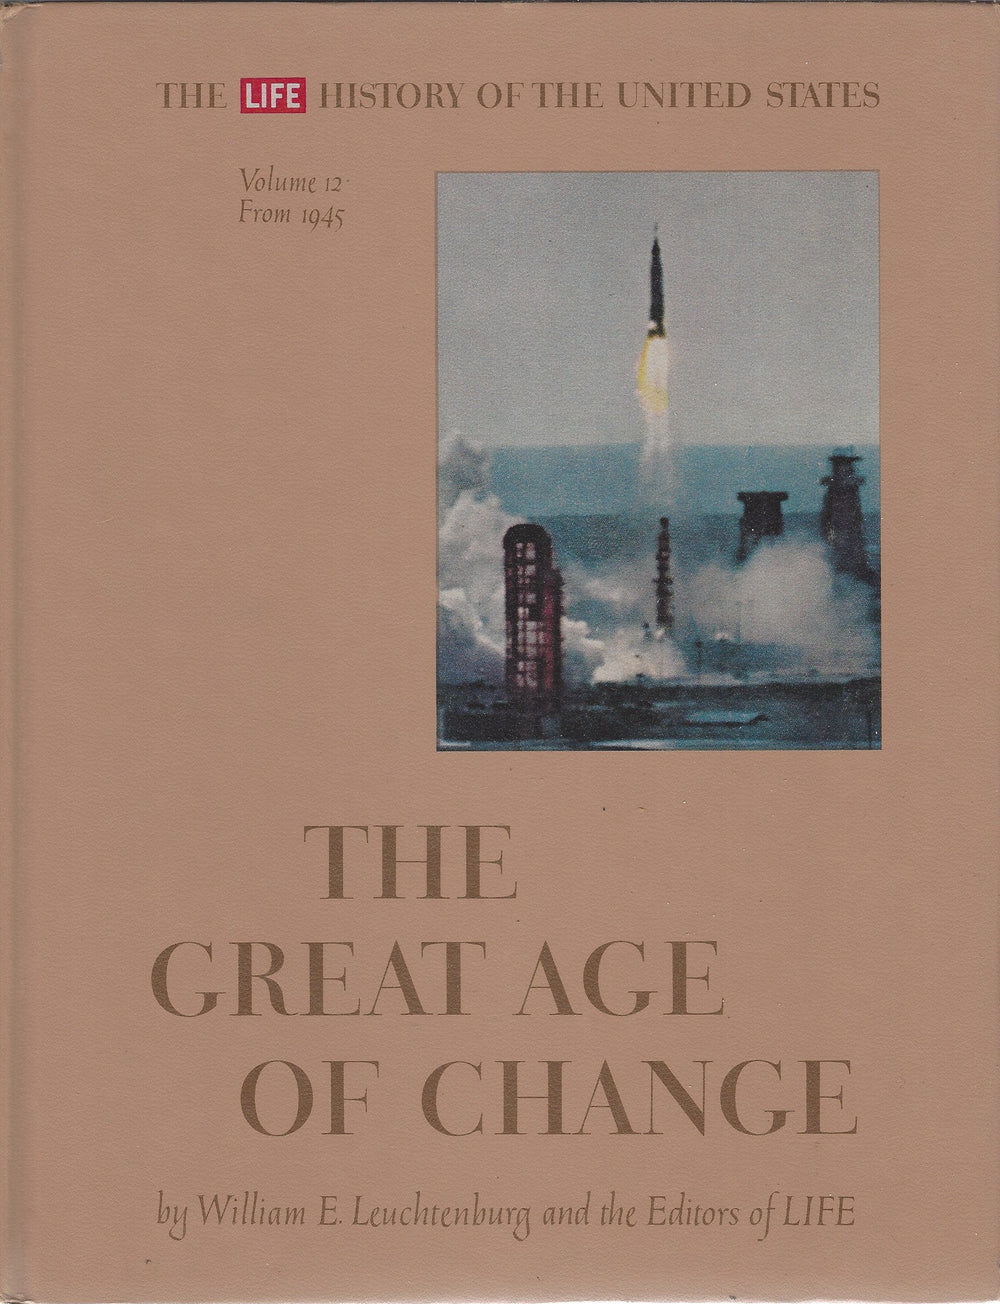 TIME-LIFE: The History of The United States; Vol 12 From 1945; The Great Age of Change by William E. Leuchtenburg